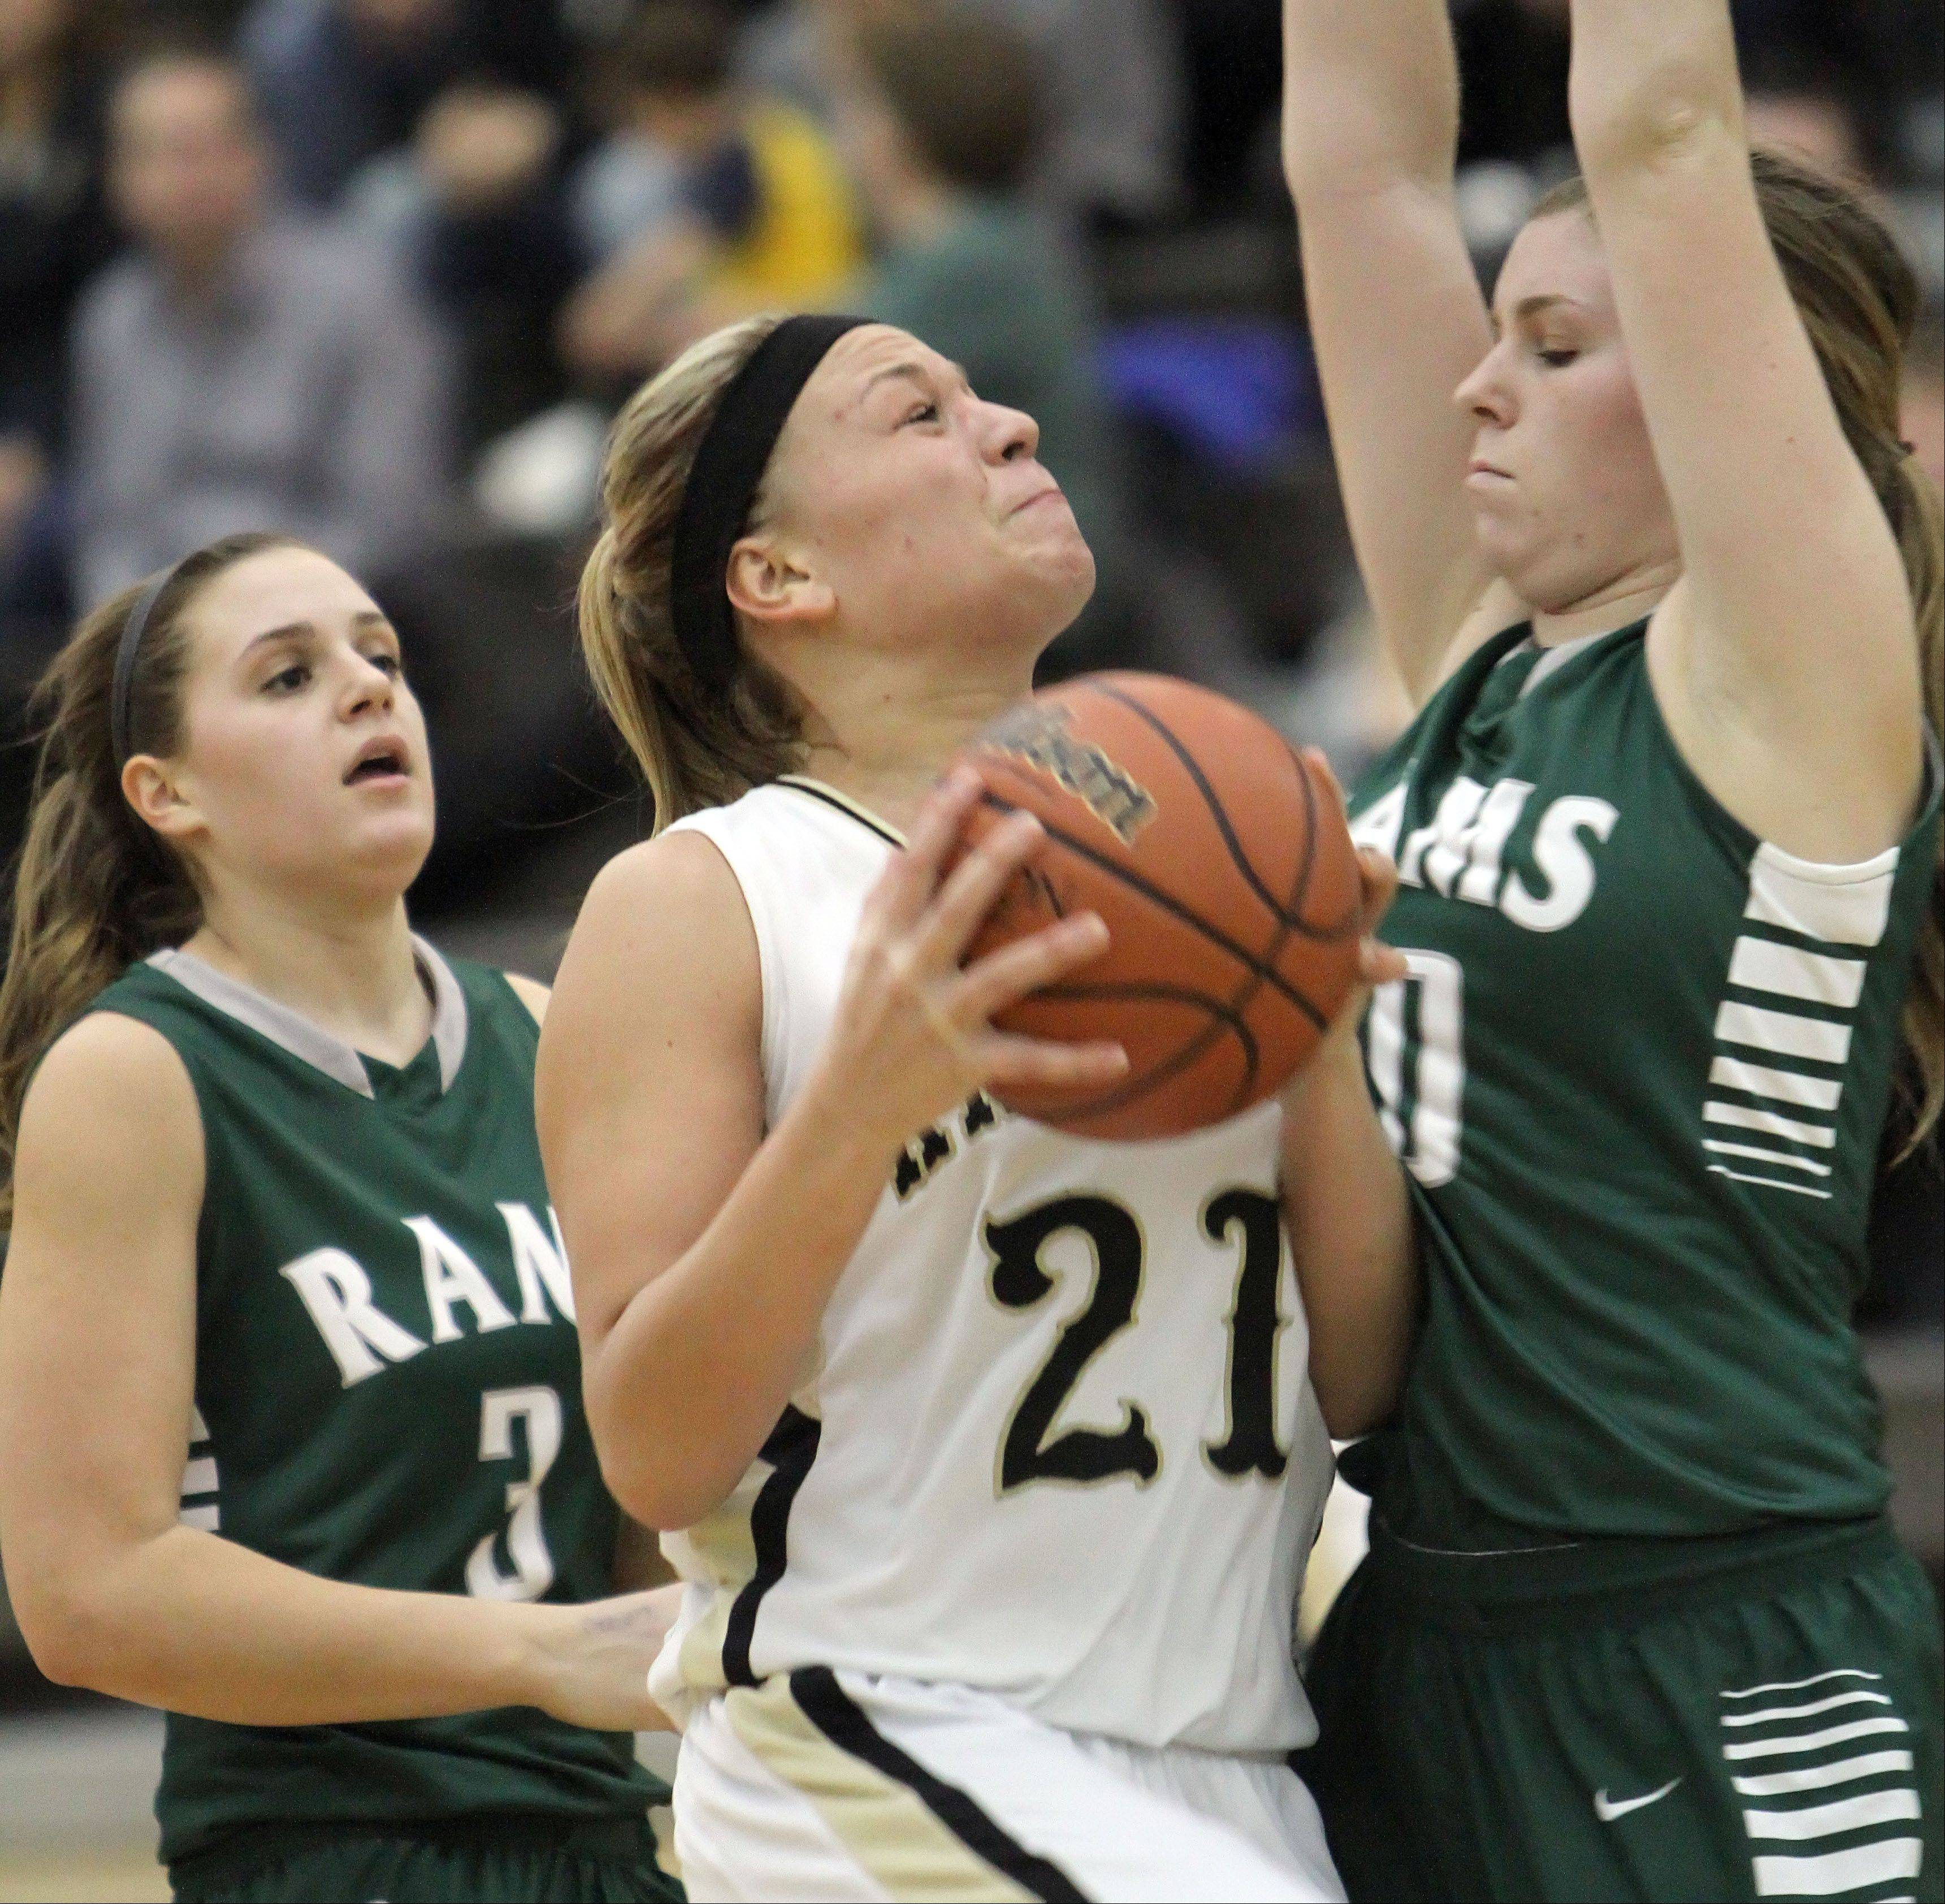 Grayslake North's Shyanne Ludwick, center, drives on Grayslake Central's Maddy Miller, right, and Savannah Mudd on Wednesday night at Grayslake North.